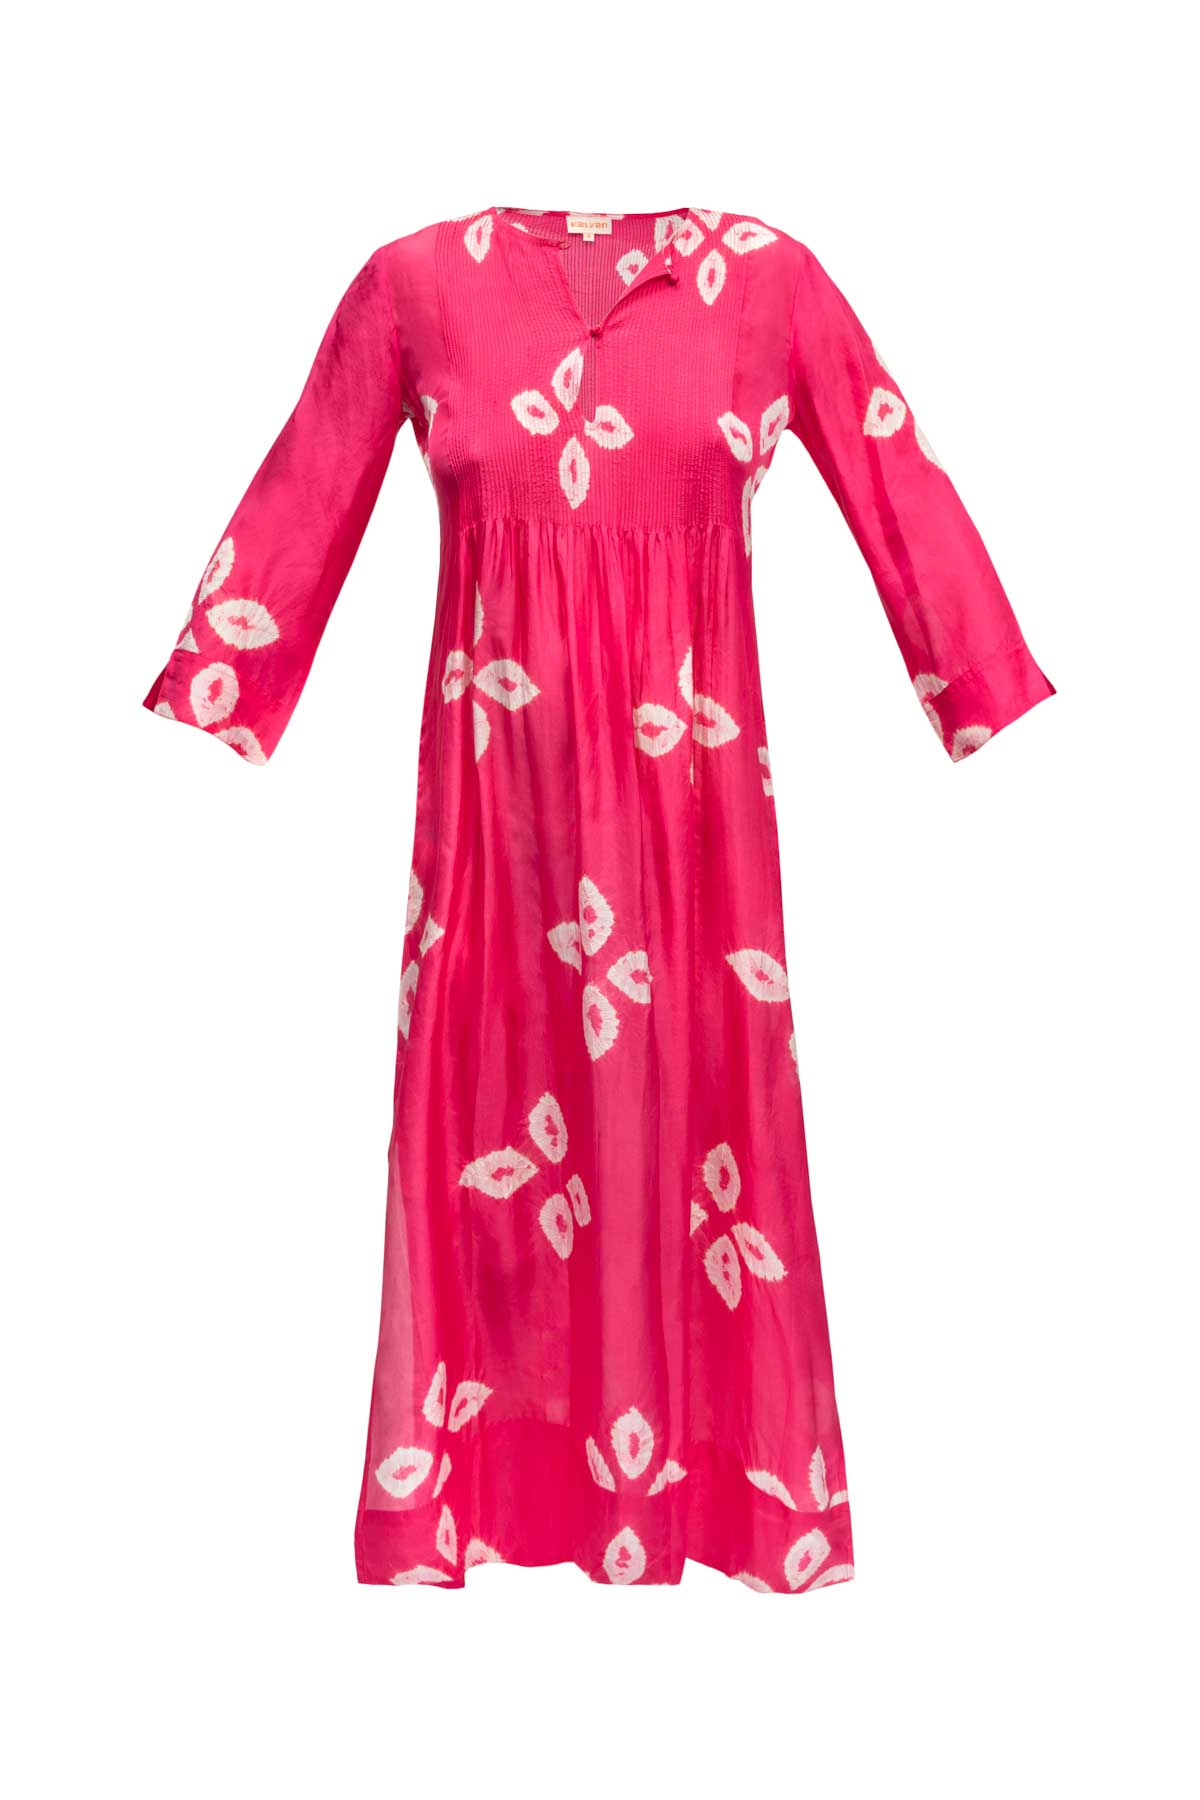 Heidi Silk Dress - Floral Fuchsia